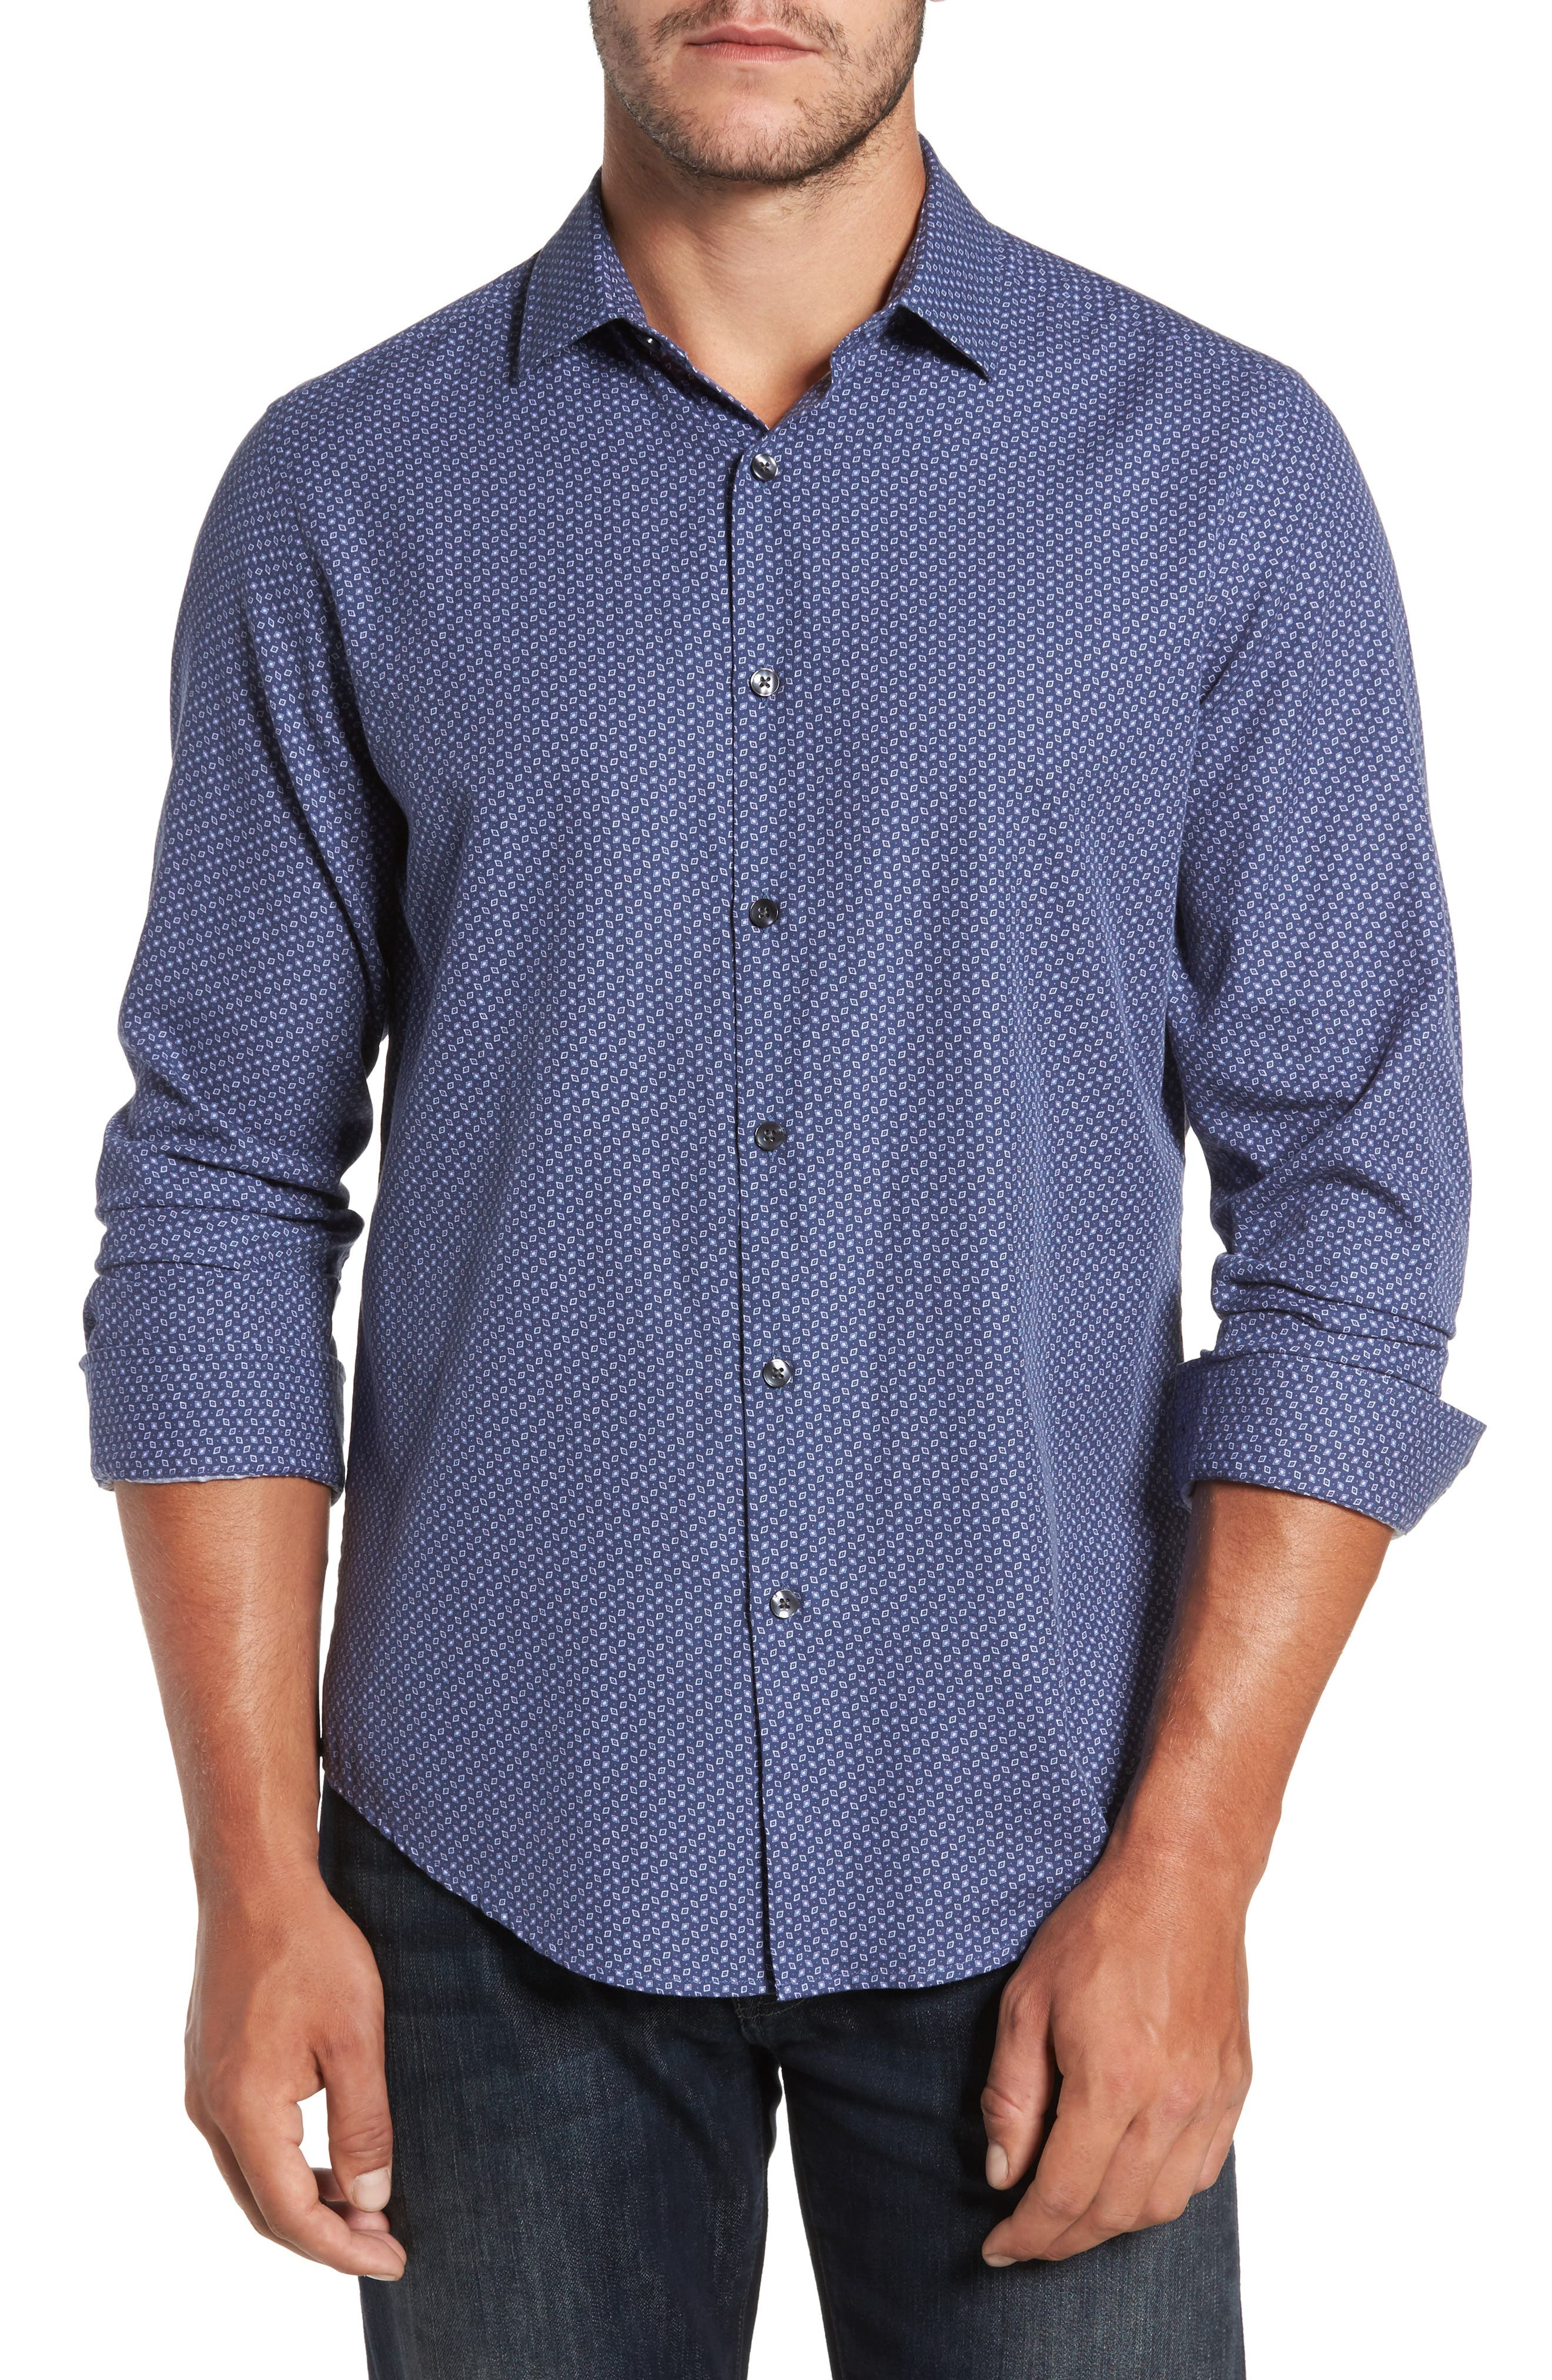 Robert Barakett Athens Regular Fit Print Sport Shirt